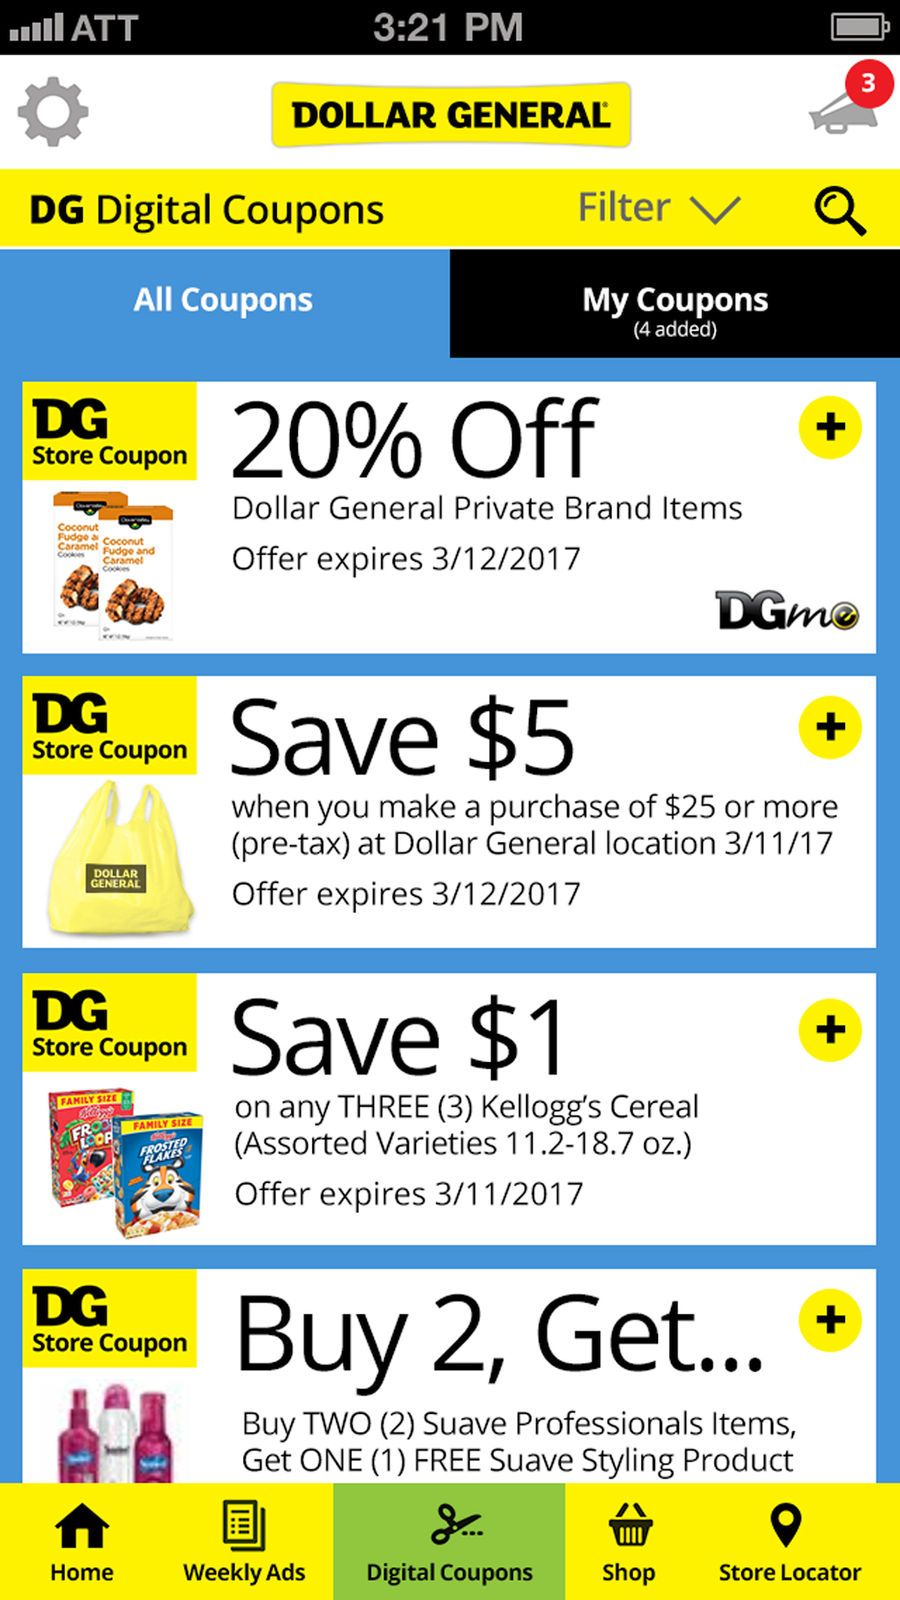 Dollar General Ios Shopping App Apps Dollar General Dg Digital Coupons Digital Coupons